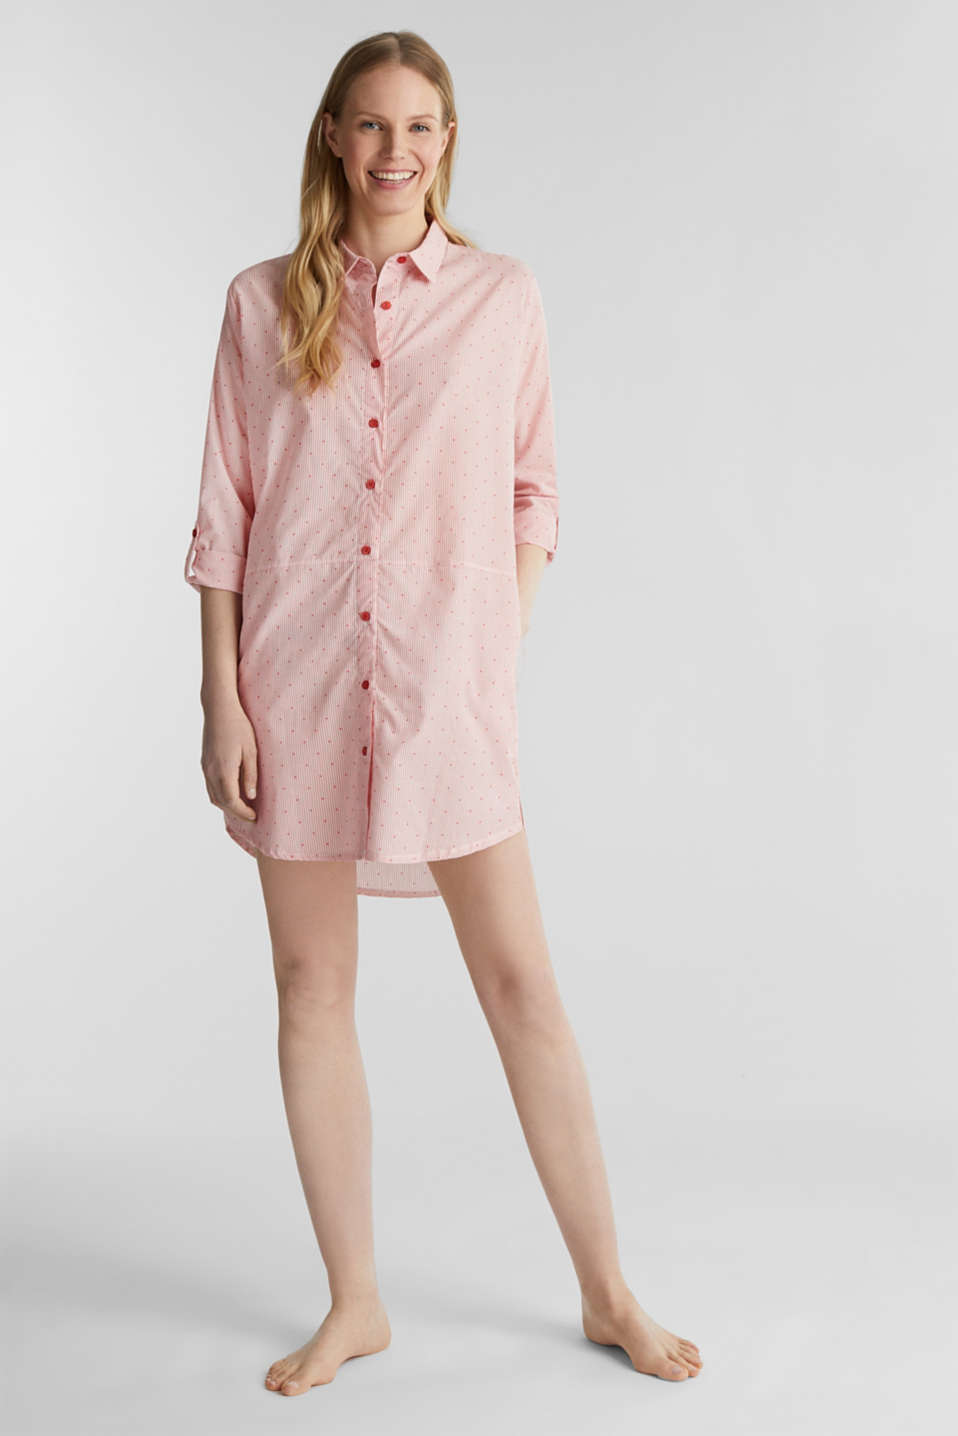 Esprit - Woven nightshirt made of 100% cotton